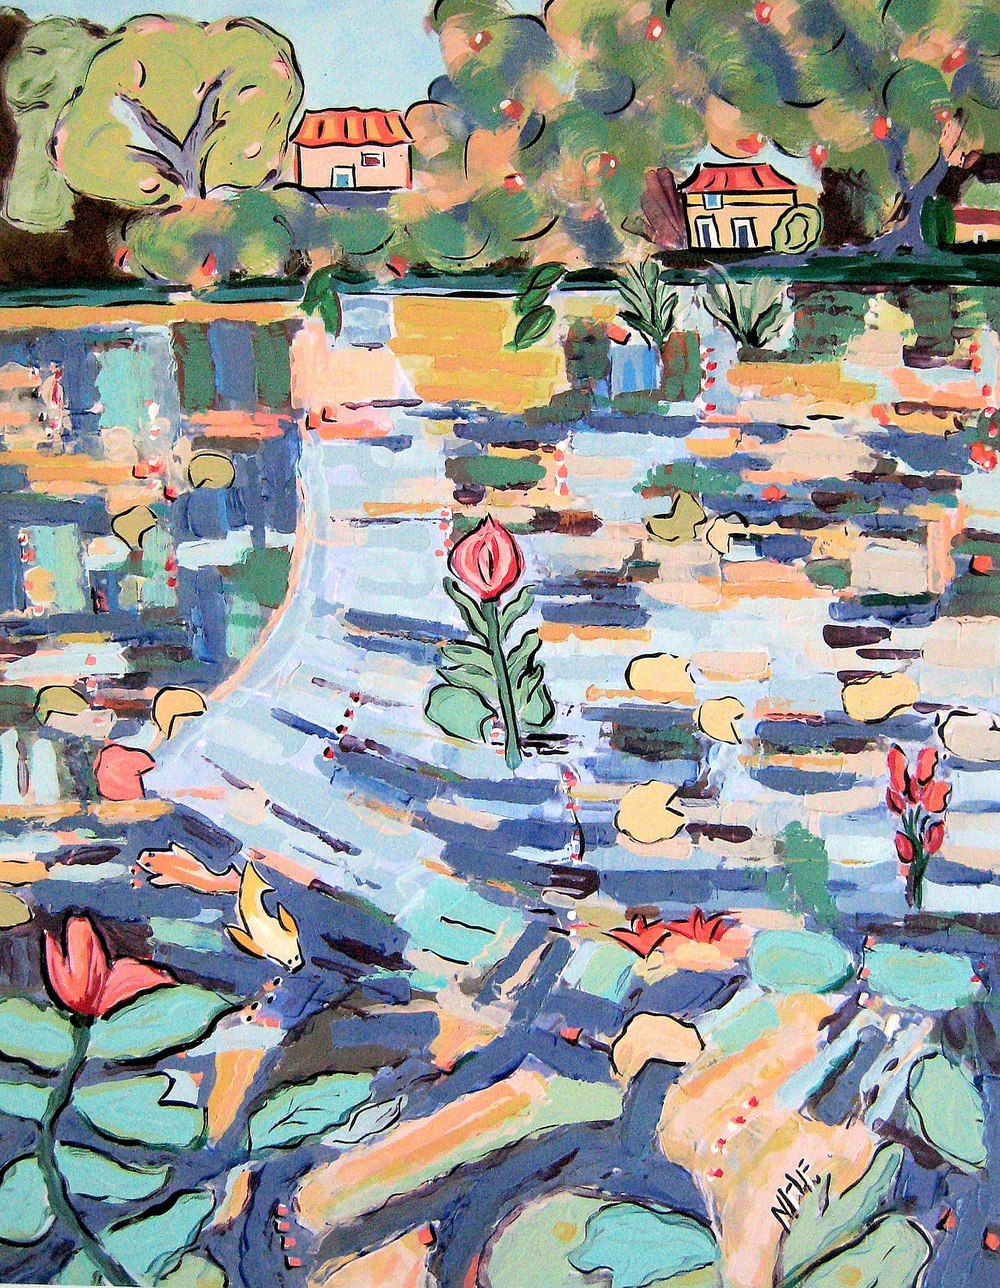 Houses Beyond the Lily Pond 2 , acrylic on mounted board, 18x15, 22x20 matted, $775